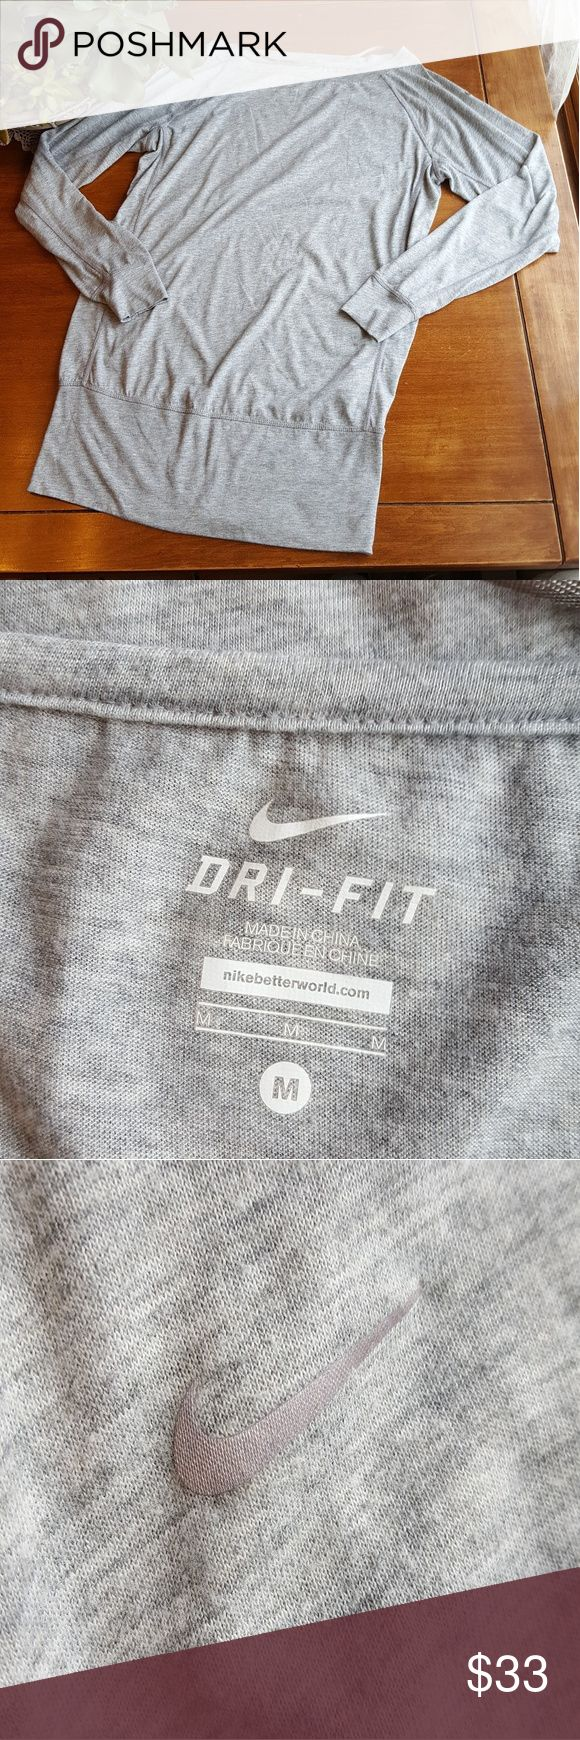 """Nike dri-fit long sleeved & torso lounging top In great used condition,  Nike grey slouchy, long (30.5 """" from shoulder to hem) soft dri-fit top. Wide cuffs on sleeves and hem. Nike Tops Tees - Long Sleeve"""